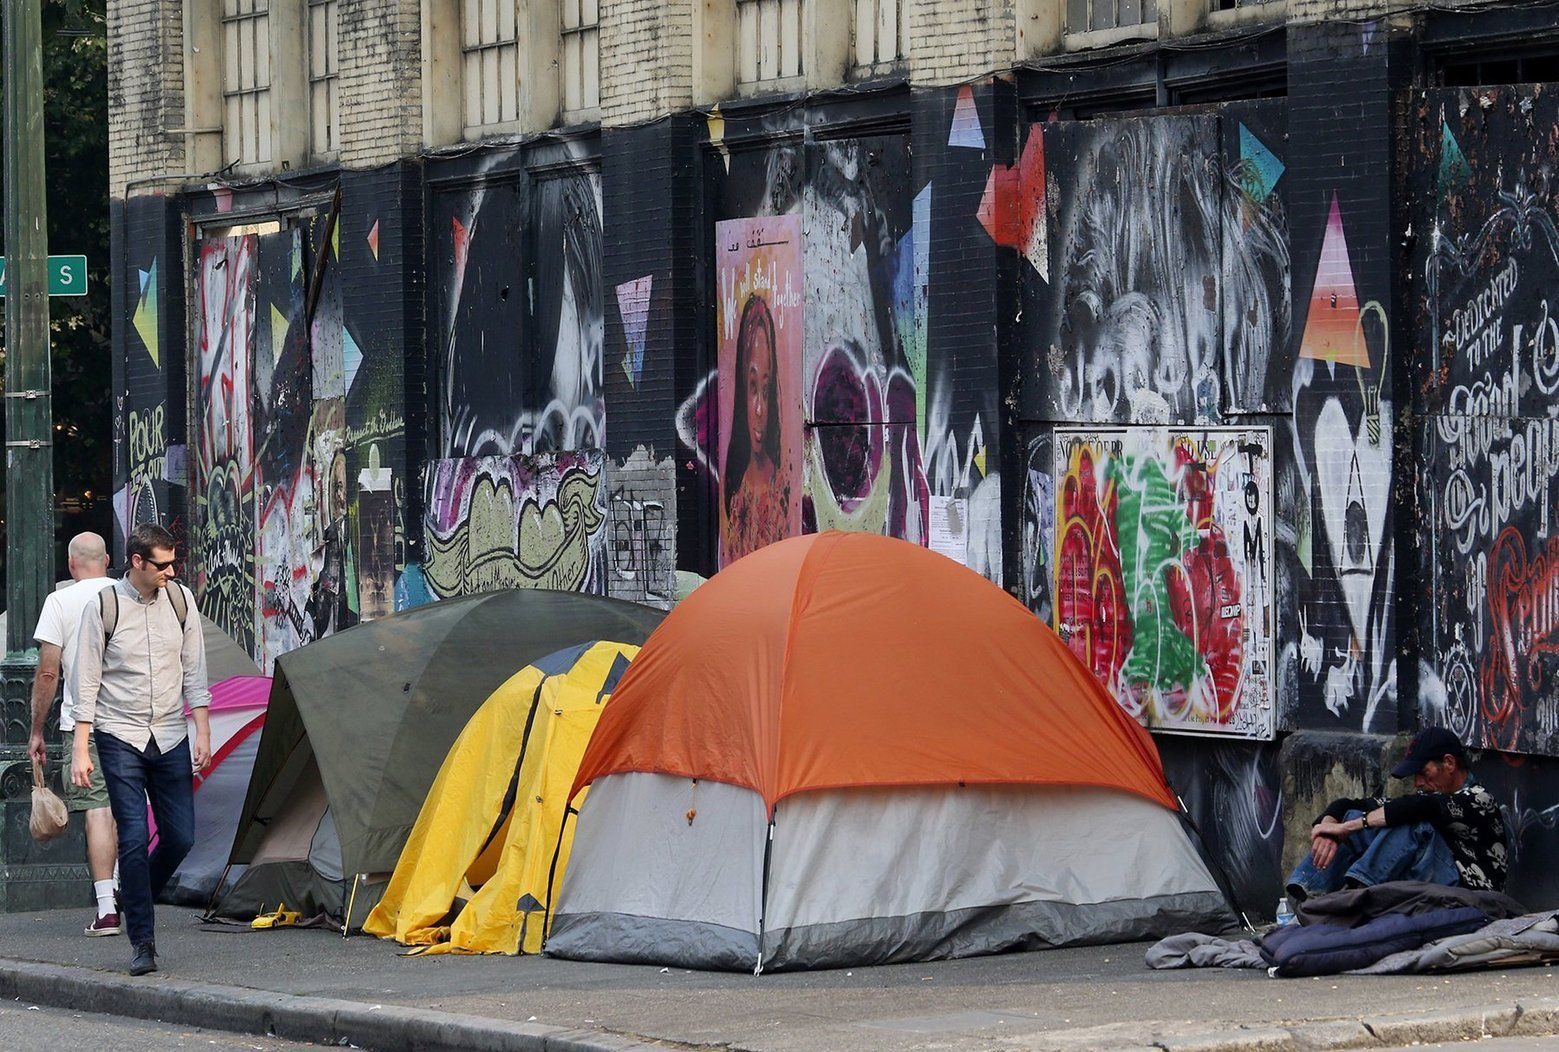 Tents Line South Main Street As Homeless People Camp On A Sidewalk In The Pioneer Square Neighborhood Of Downtown Seattle Downtown Seattle Seattle Seattle News